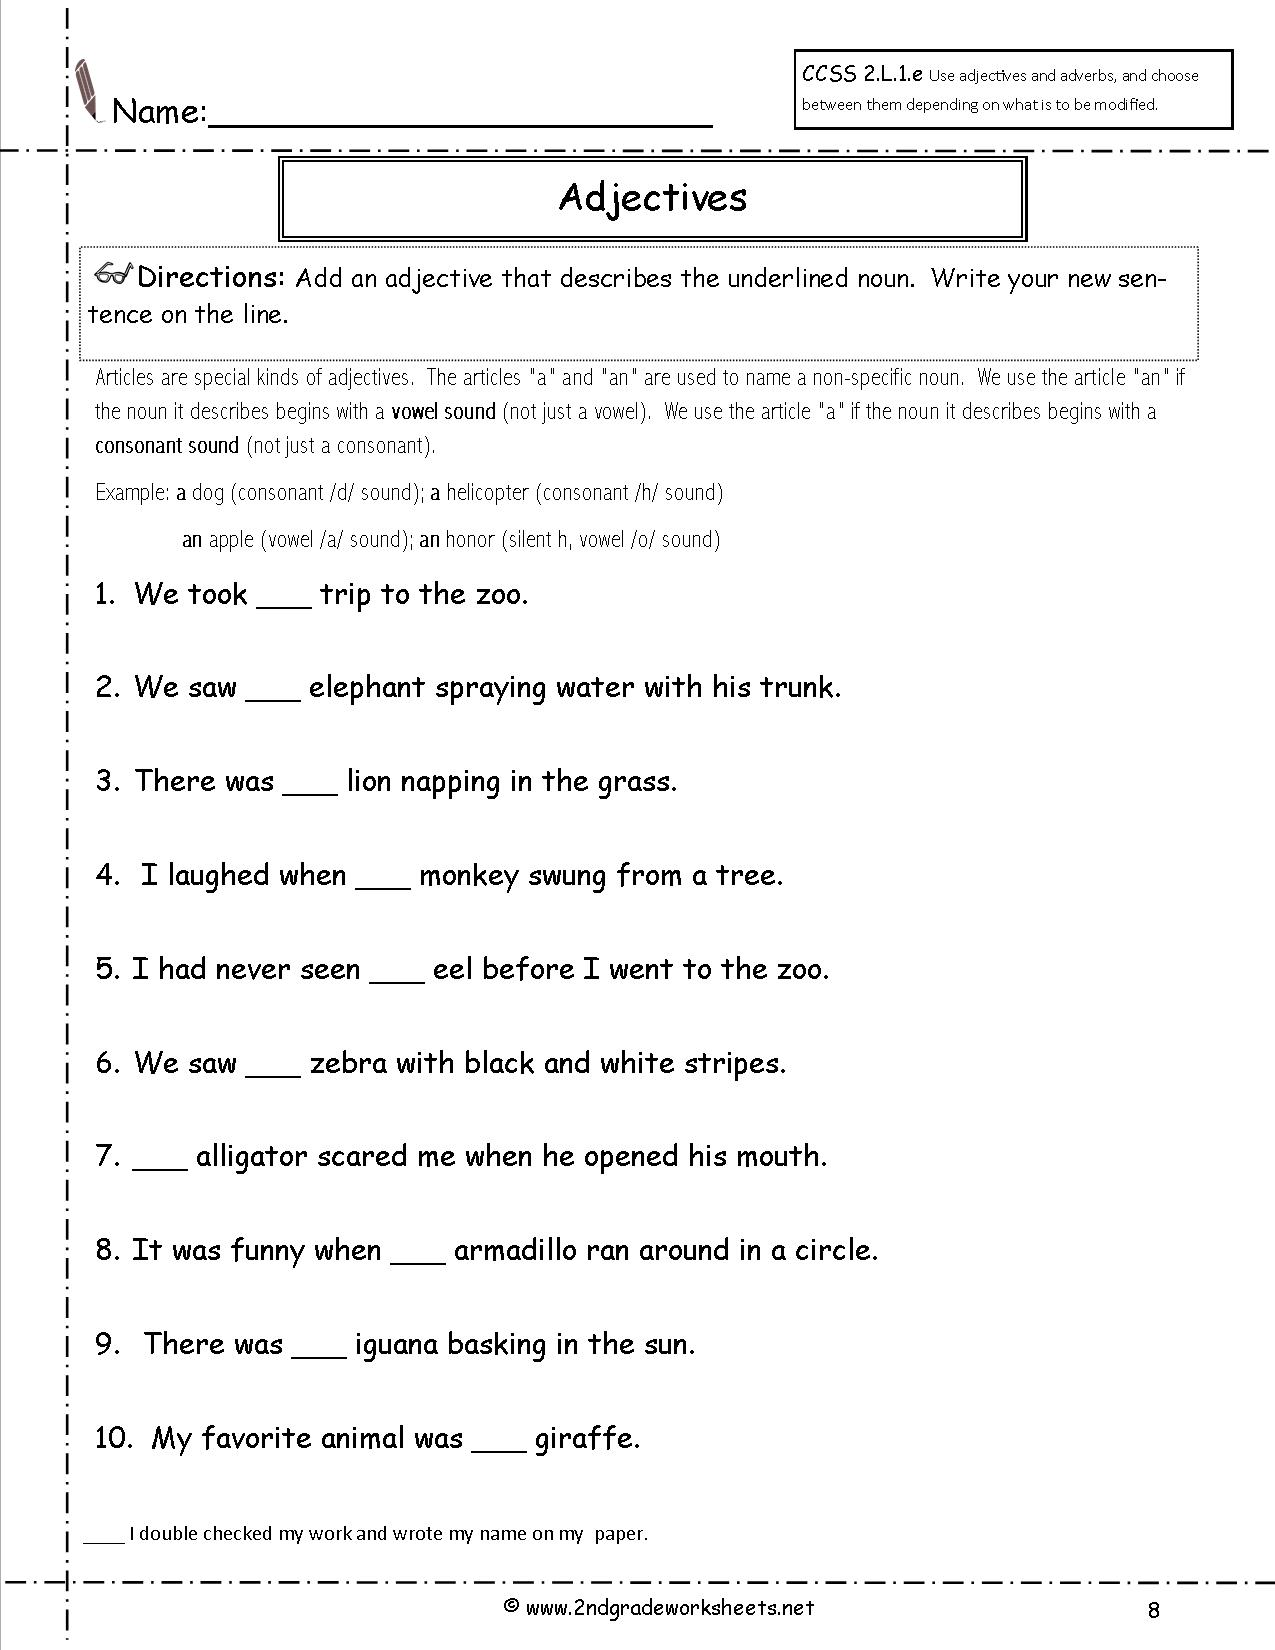 Free Worksheet Free Printable English Grammar Worksheets free printable english grammar worksheets grade 7 for adjectives a or an worksheet